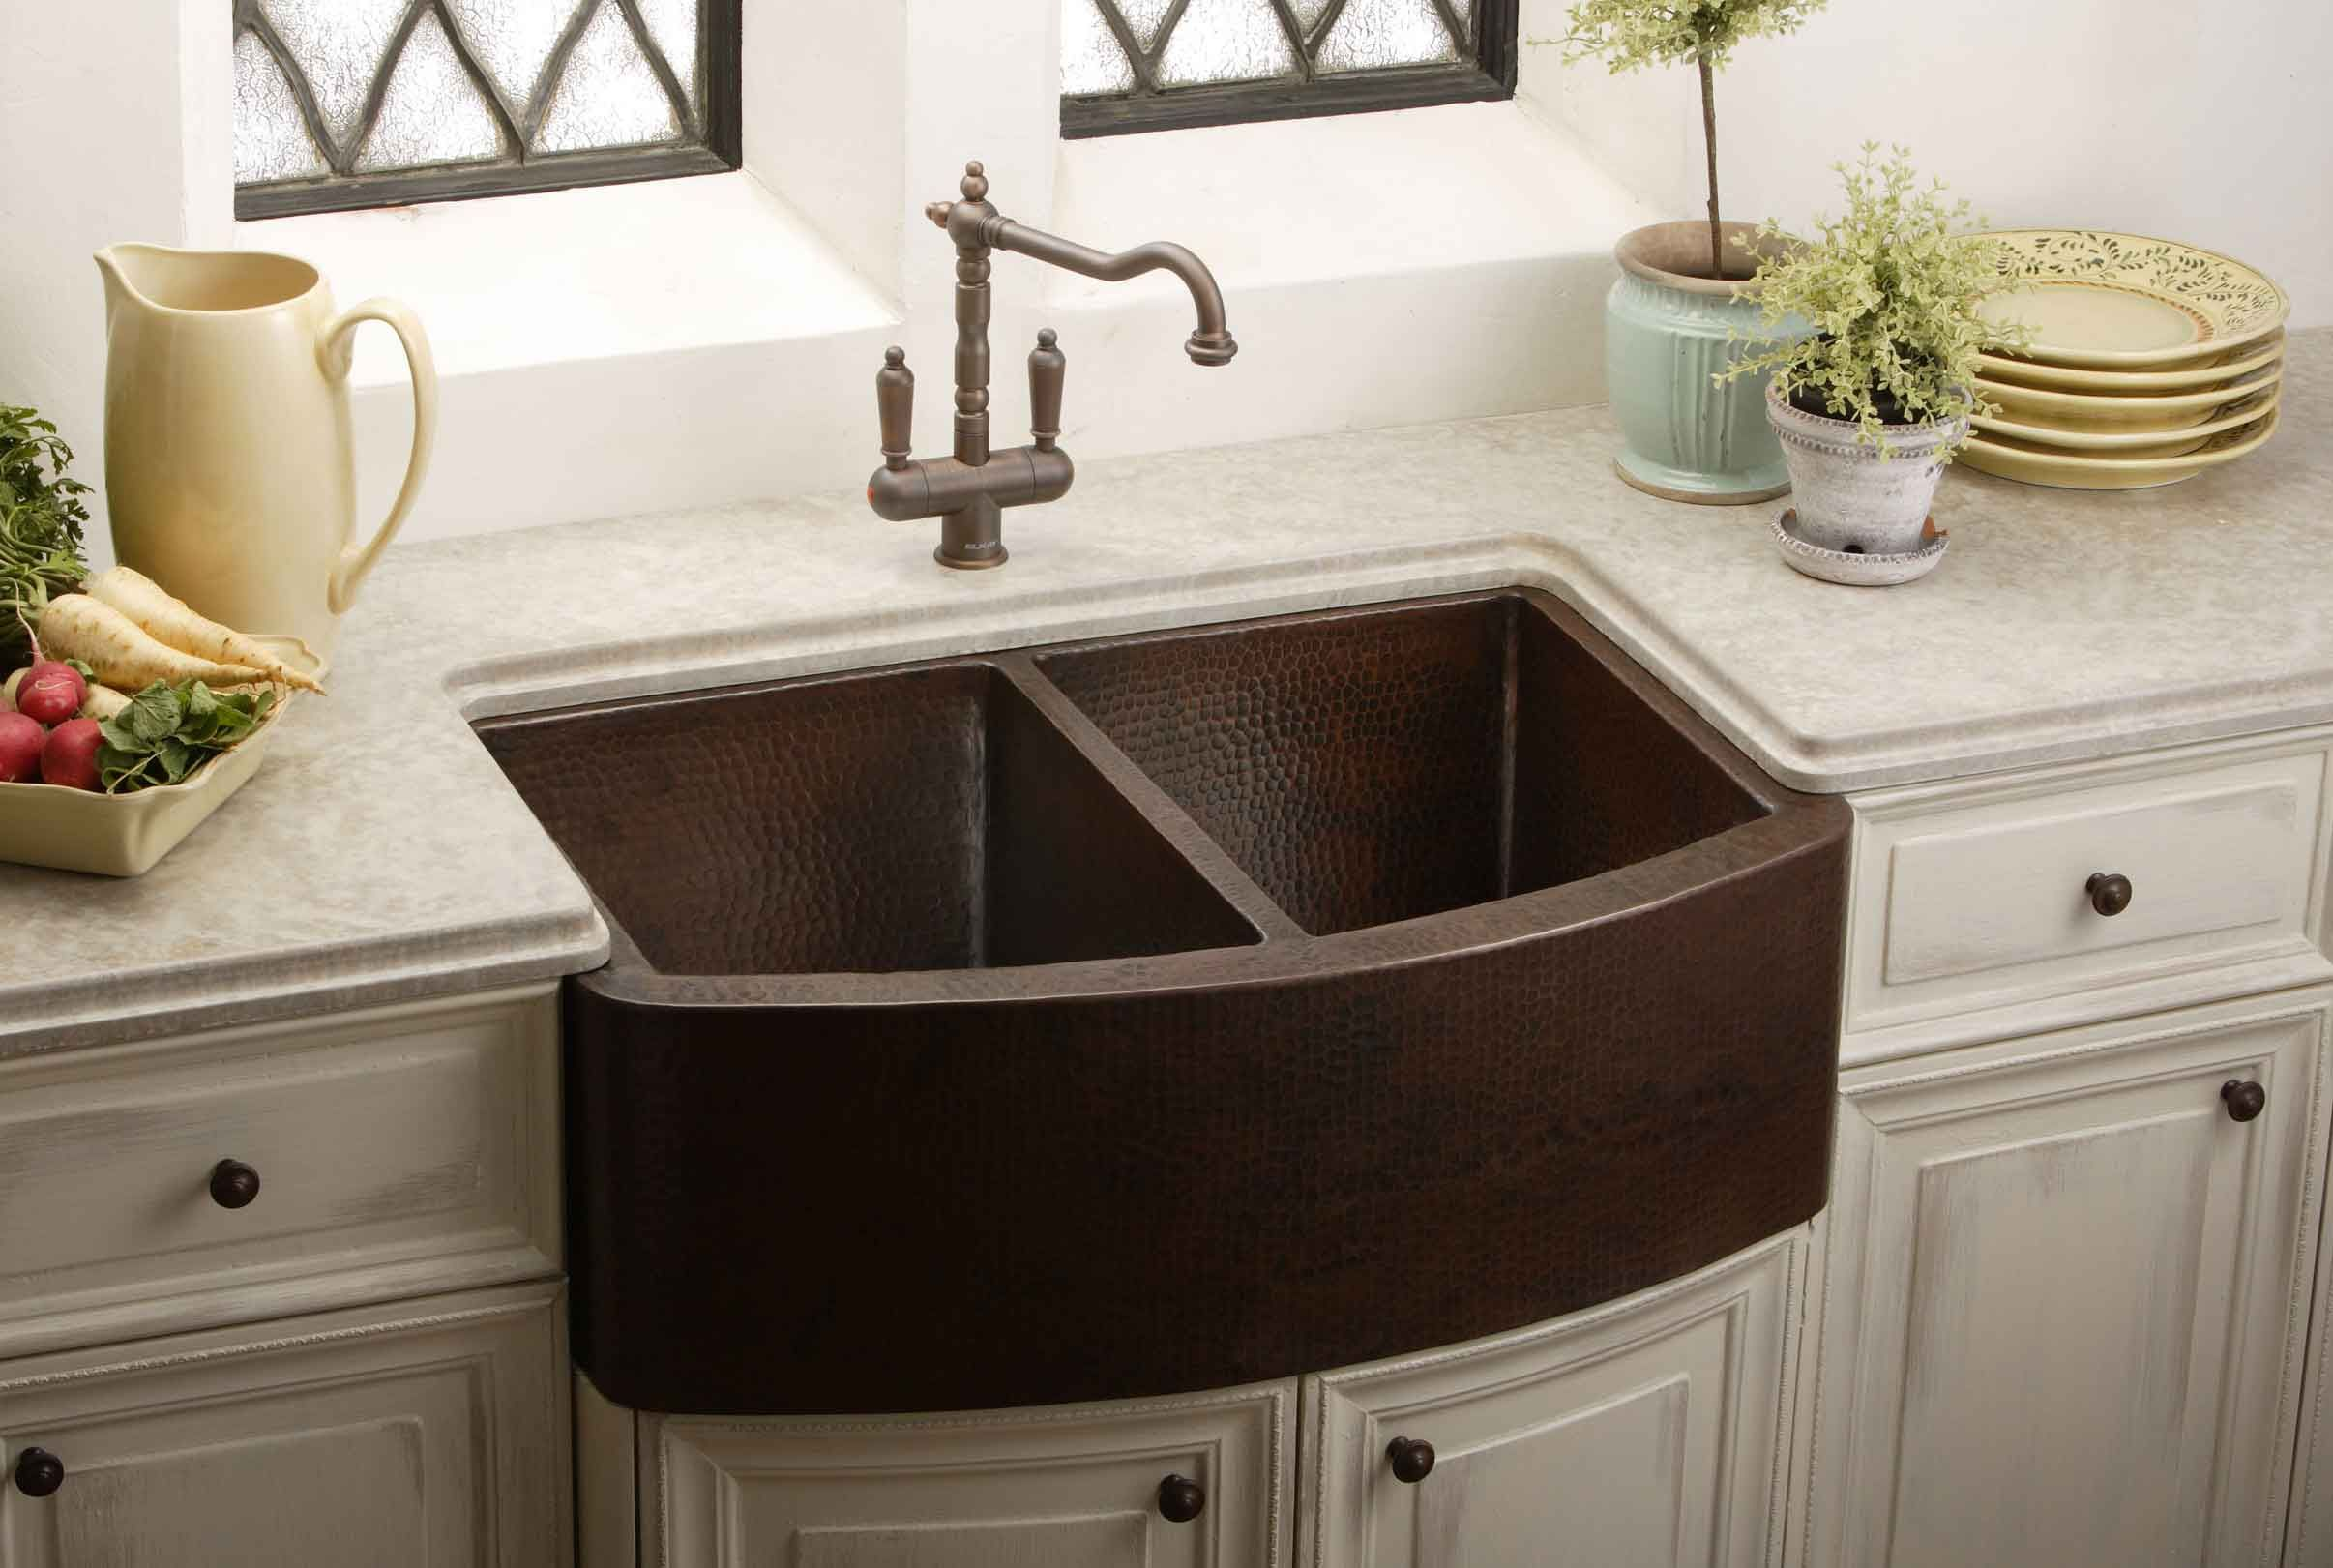 Farmhouse Sink Copper Hammered India Pied à Terre